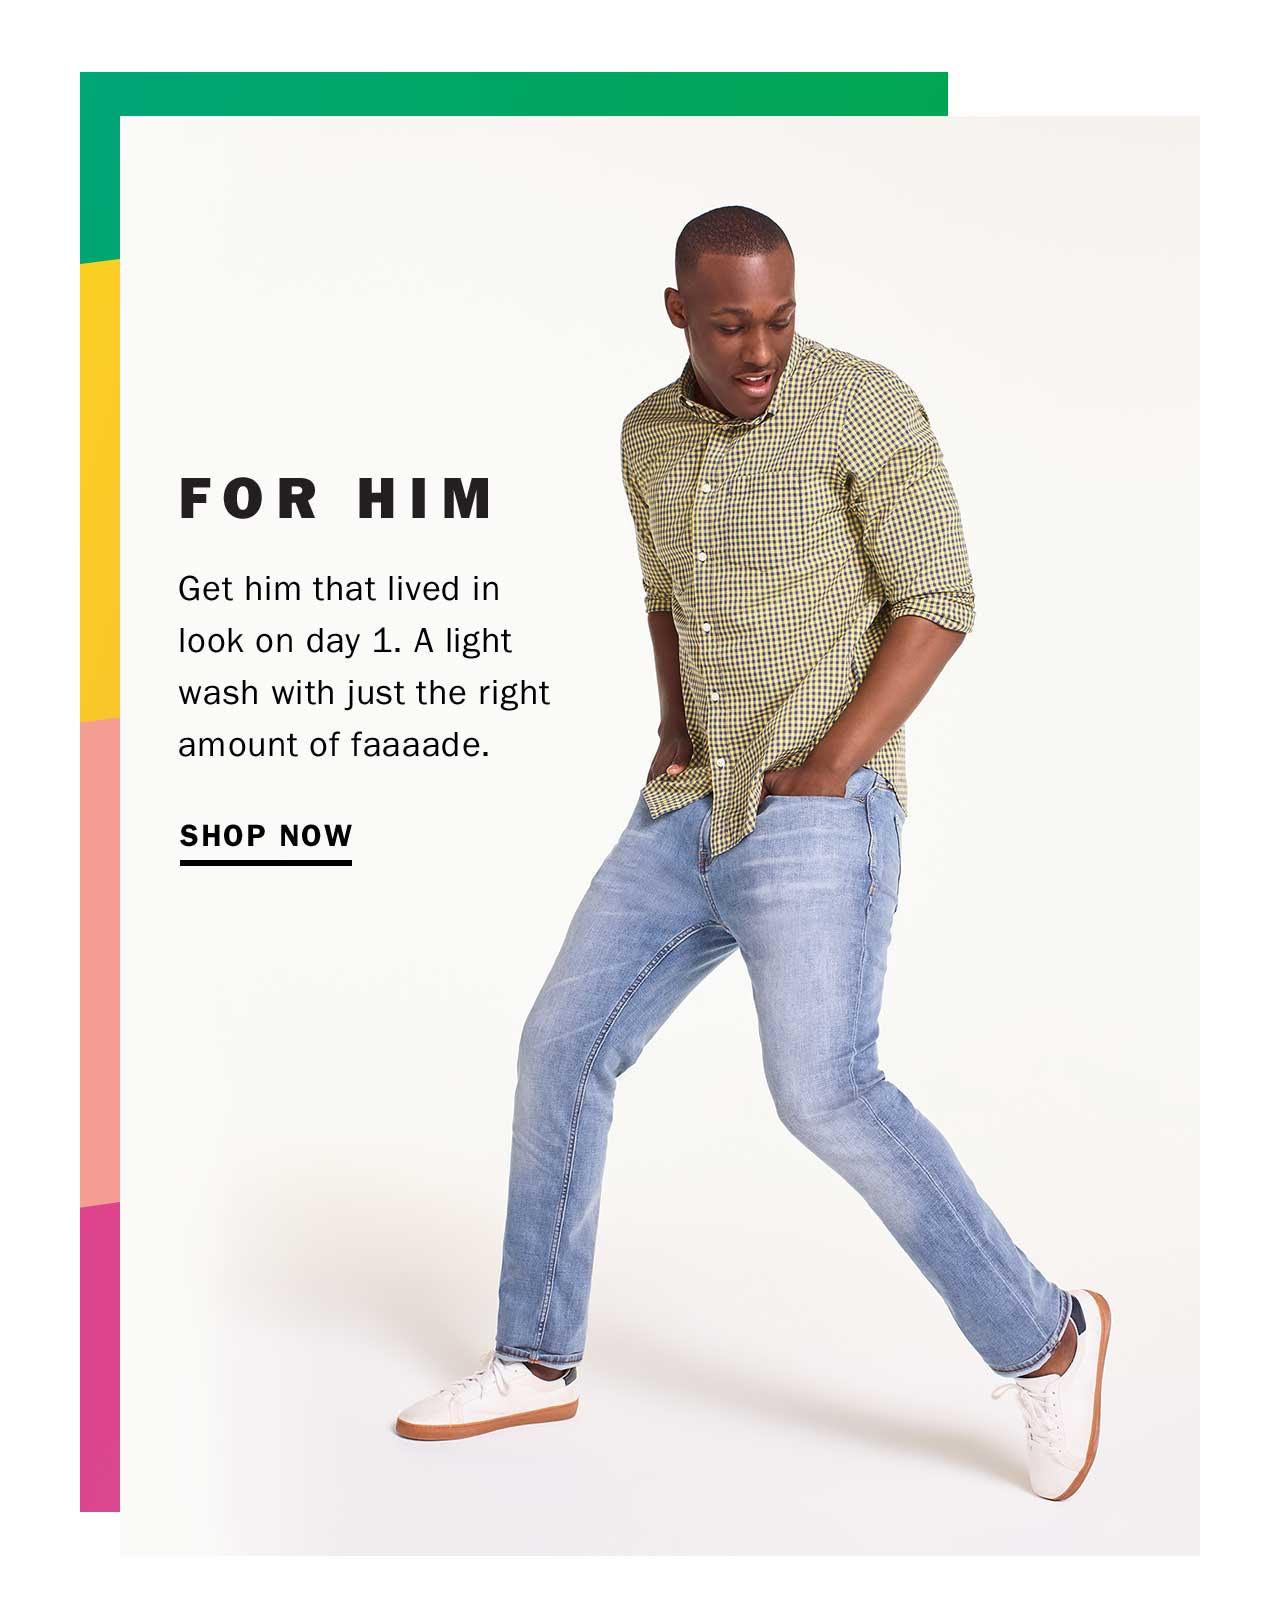 FOR HIM | SHOP NOW